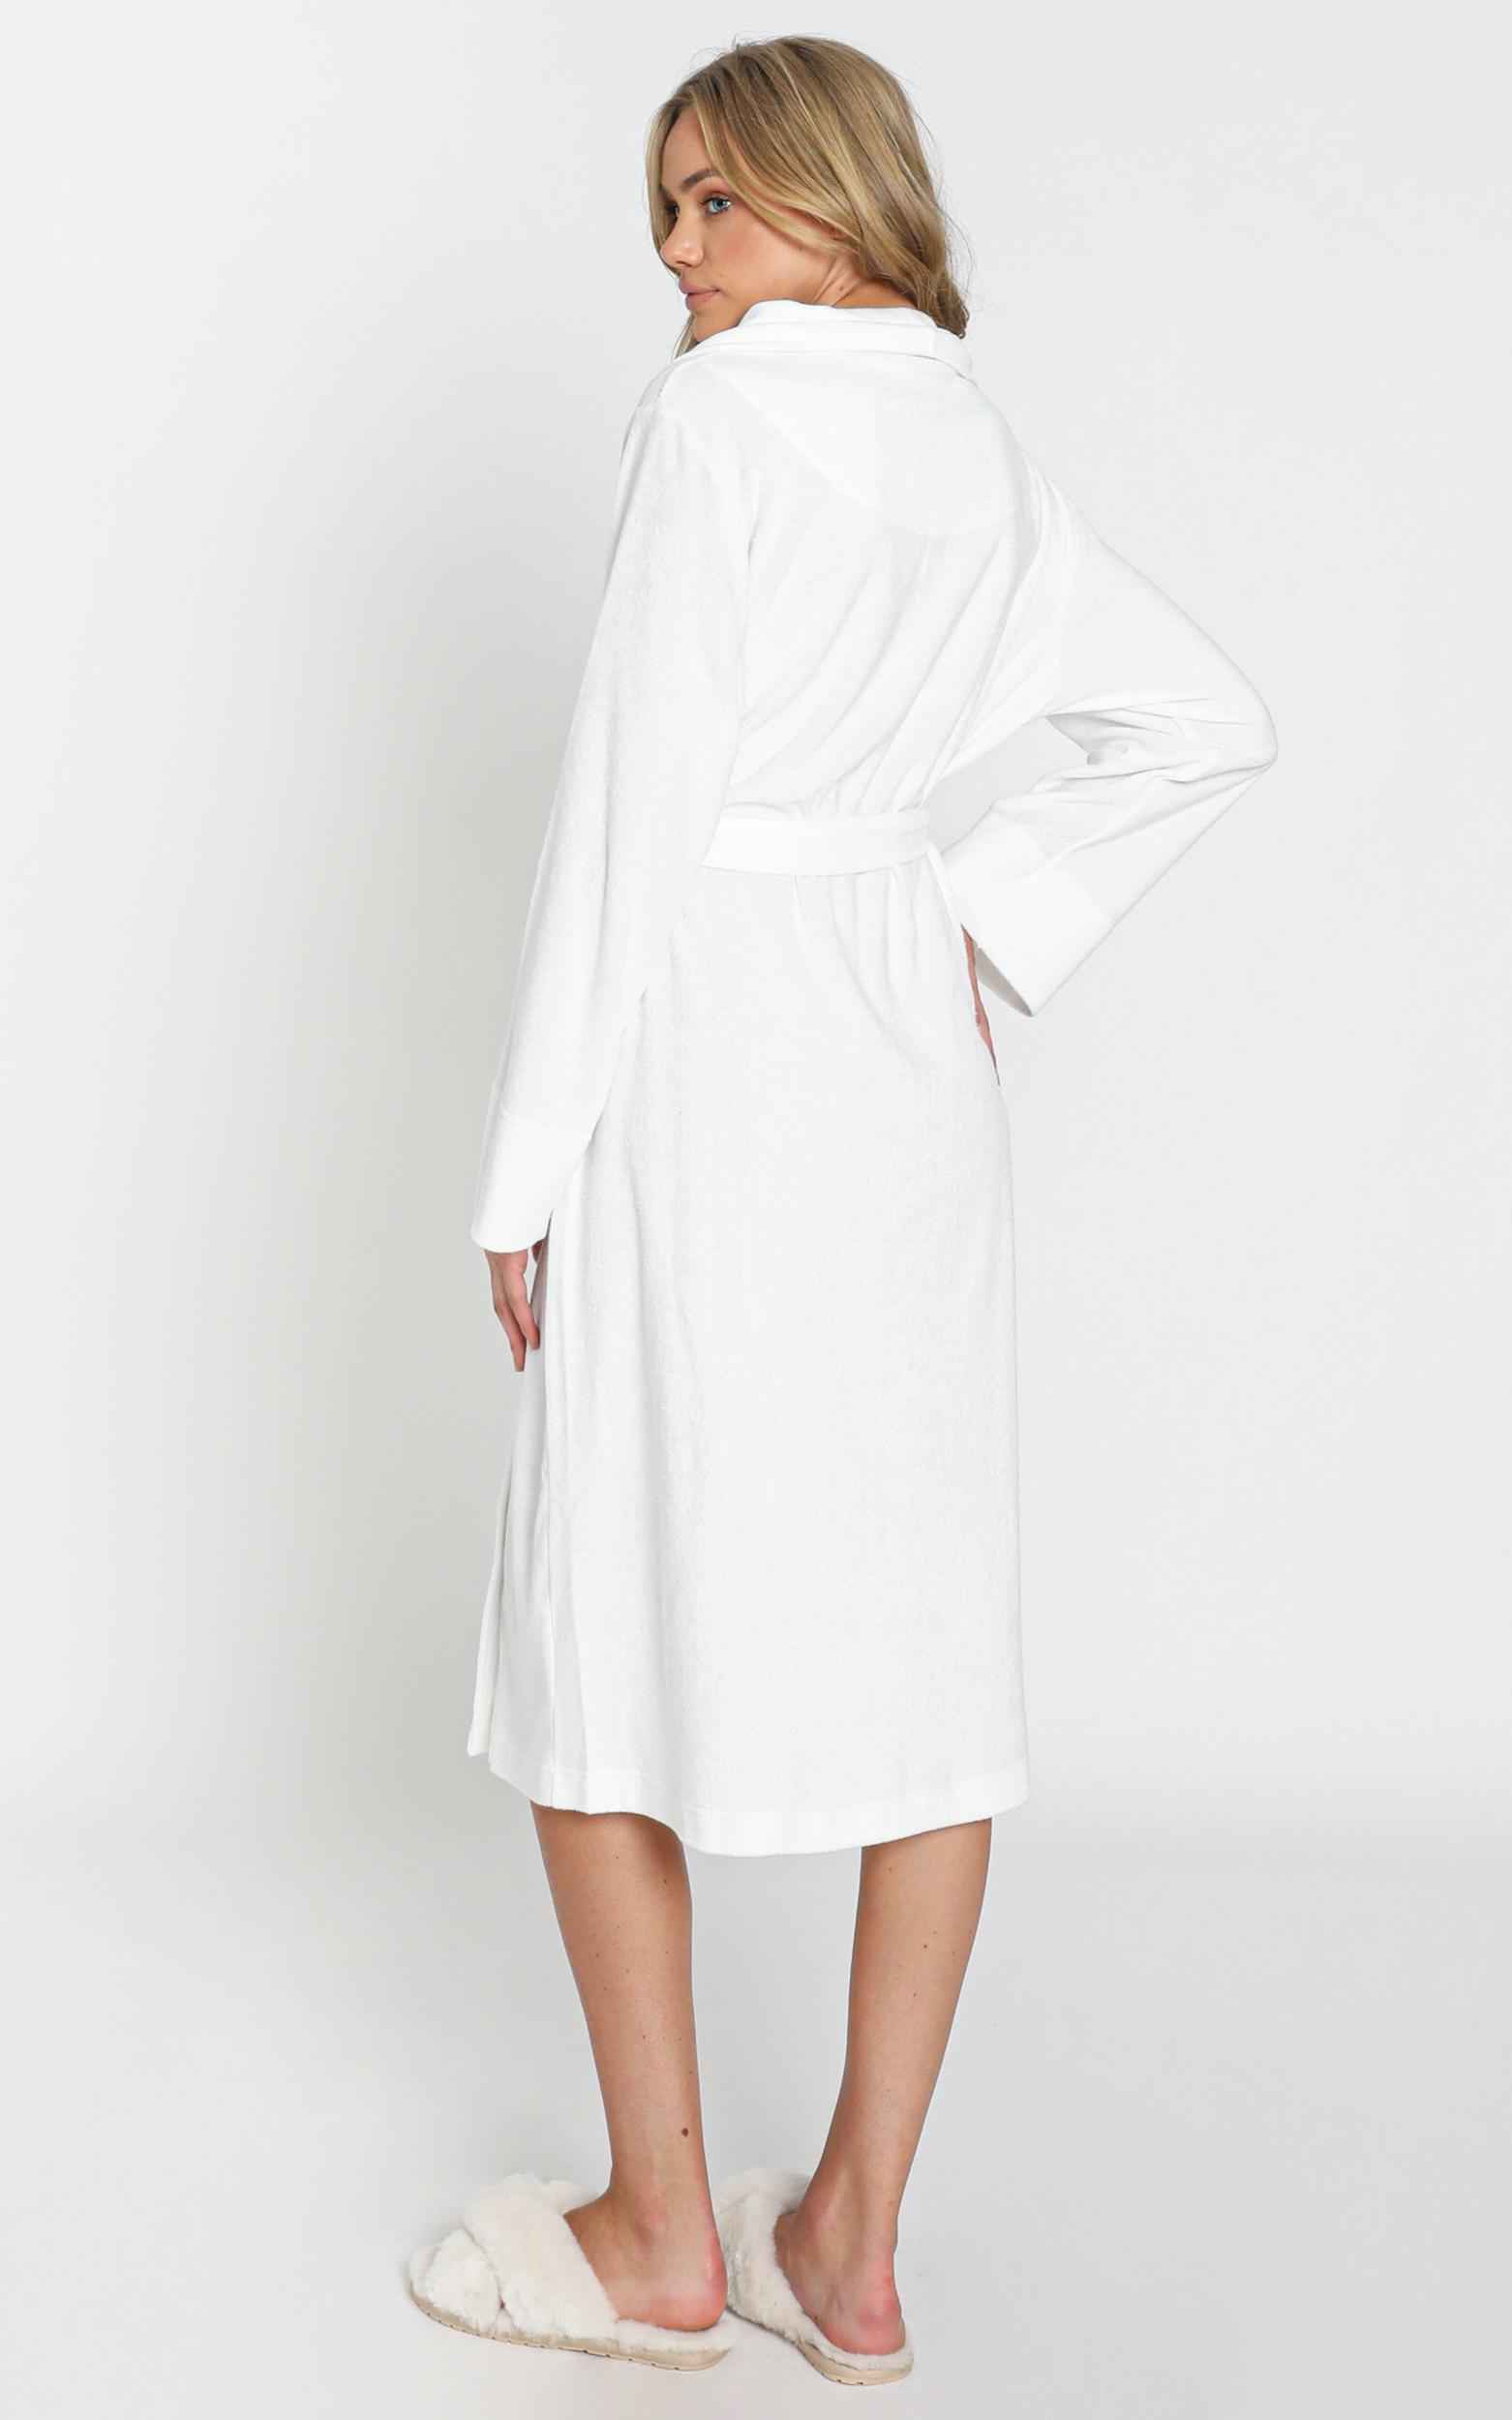 Project REM Terry Towelling Robe in White - 6 (XS), White, hi-res image number null